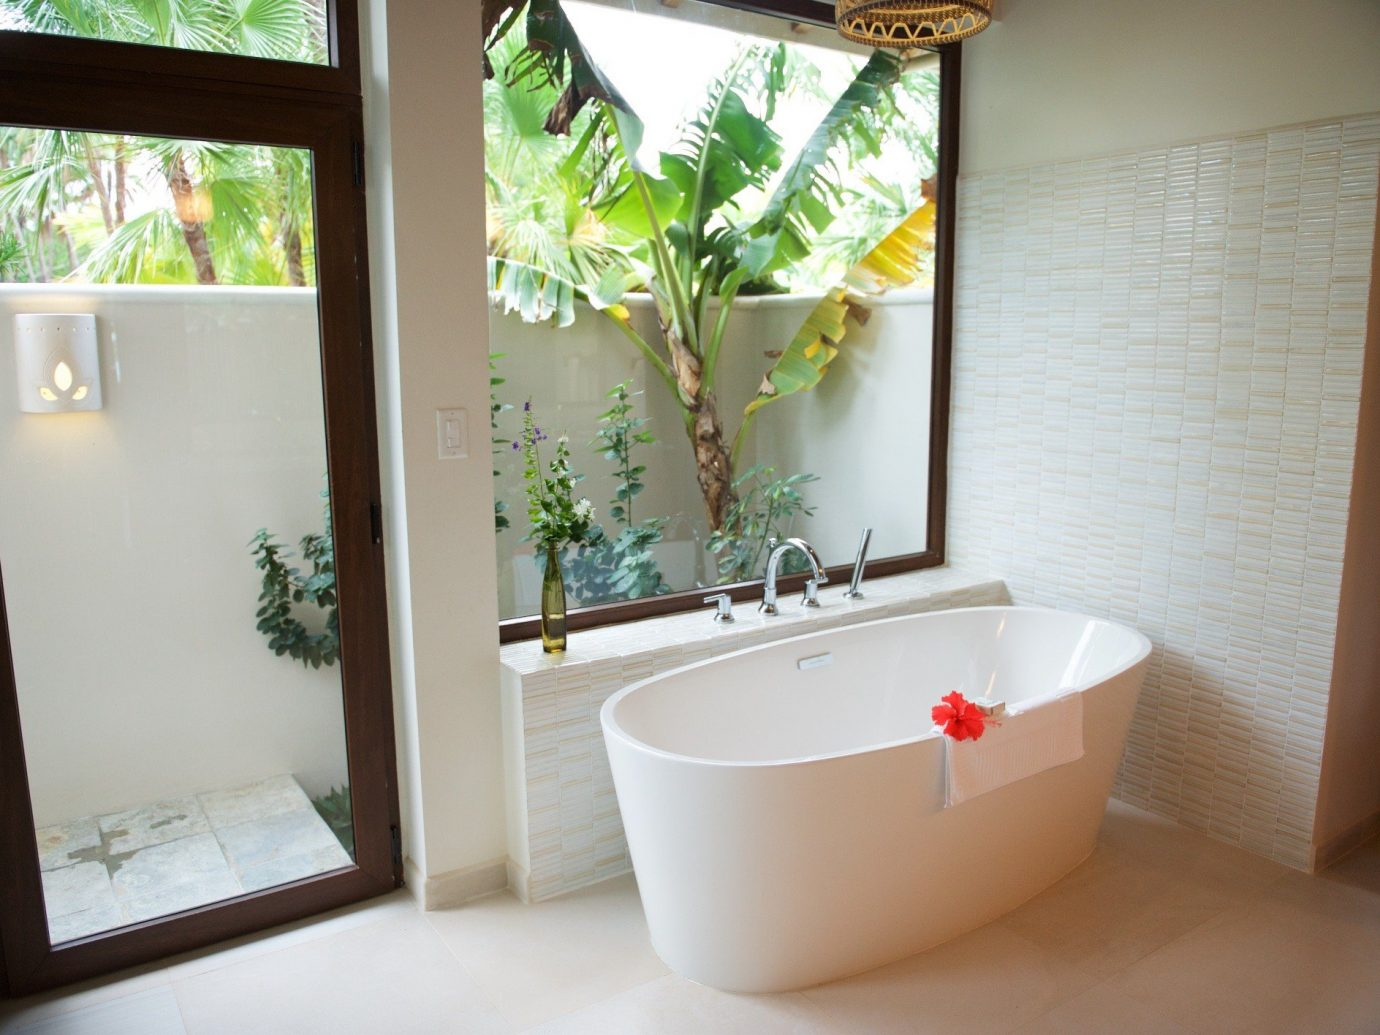 Trip Ideas wall indoor bathroom room window property house bathtub home white interior design plumbing fixture sink Design tub cottage Bath tiled